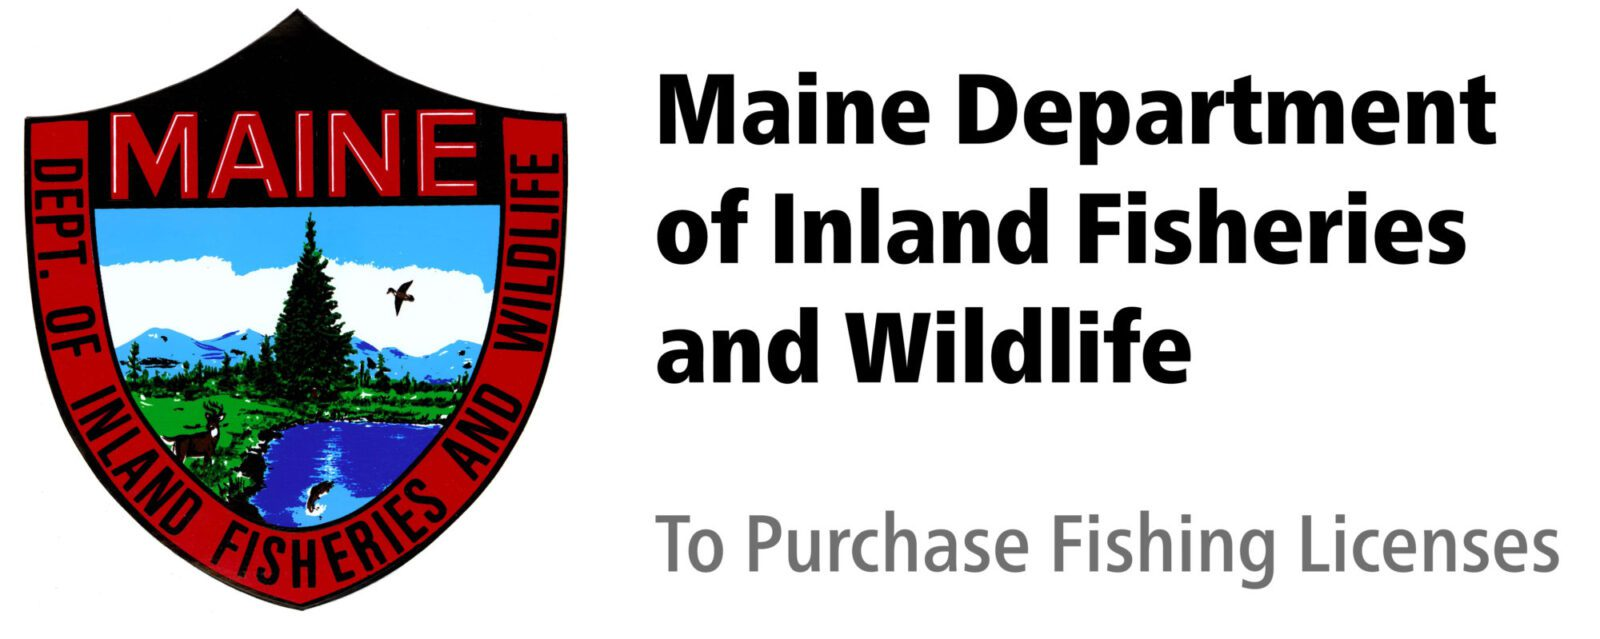 We re in full summer mode maine guide fly shop and guide for Maine fish wildlife